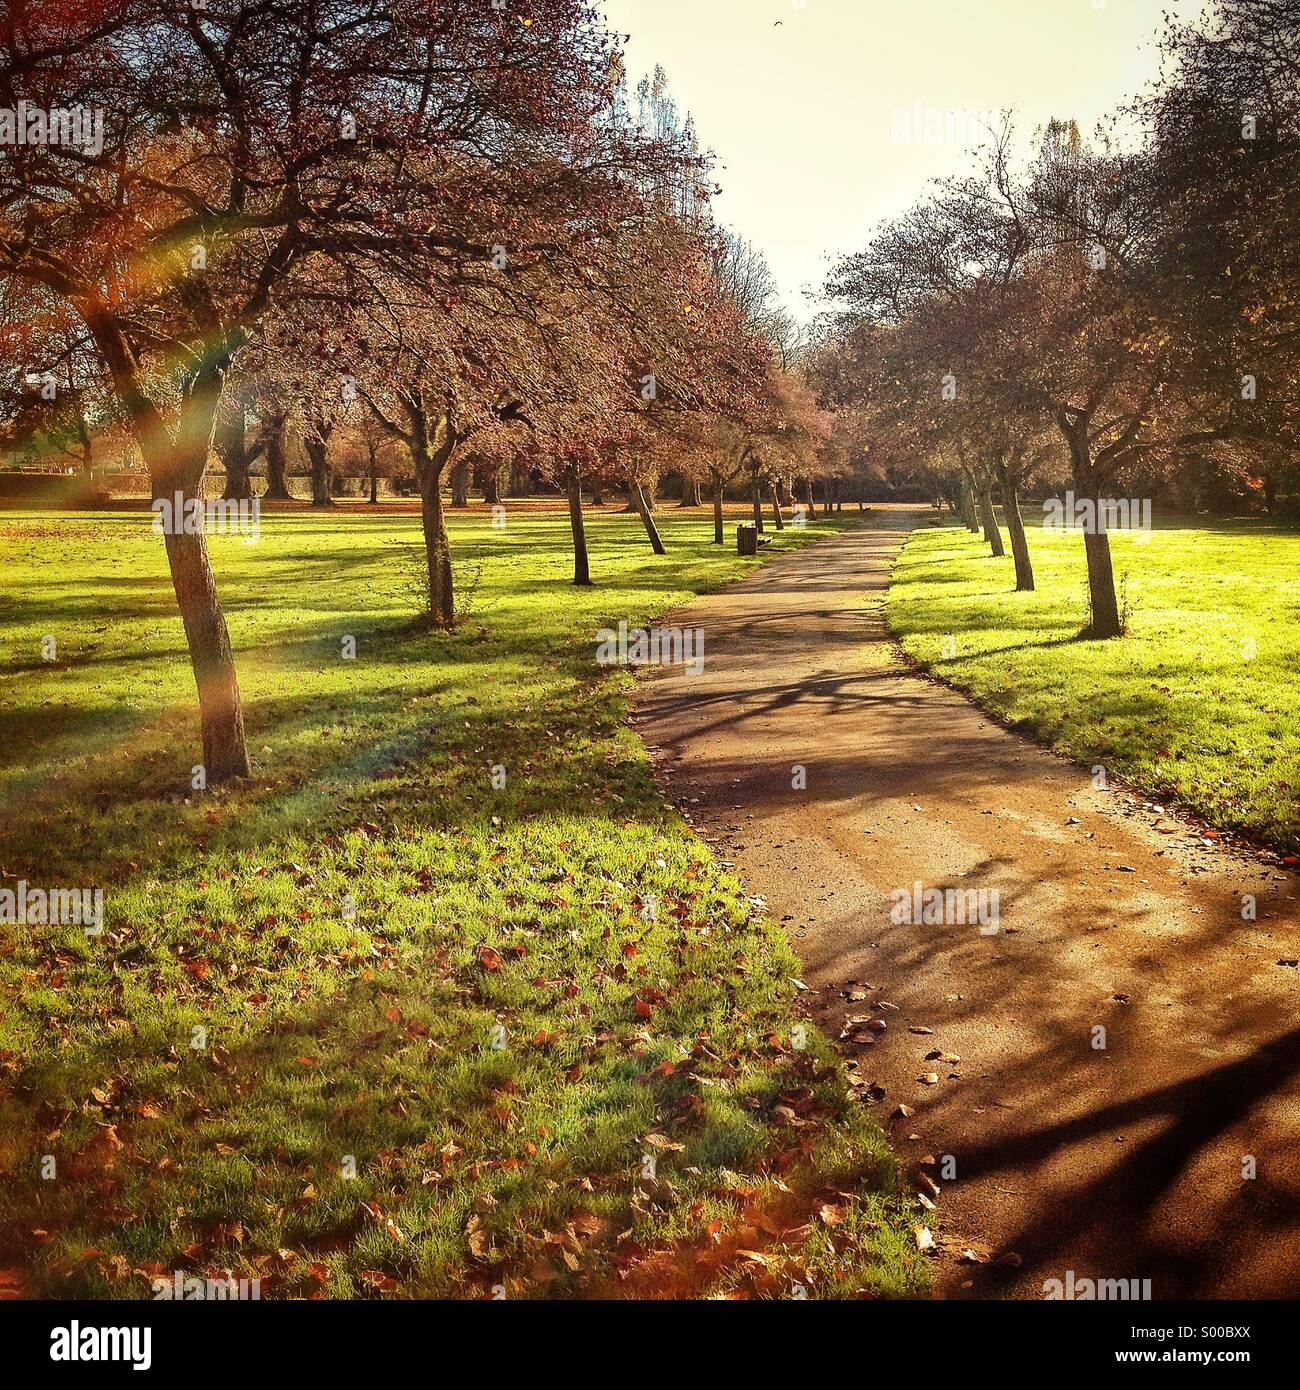 Path through Florence park In oxford, UK - Stock Image